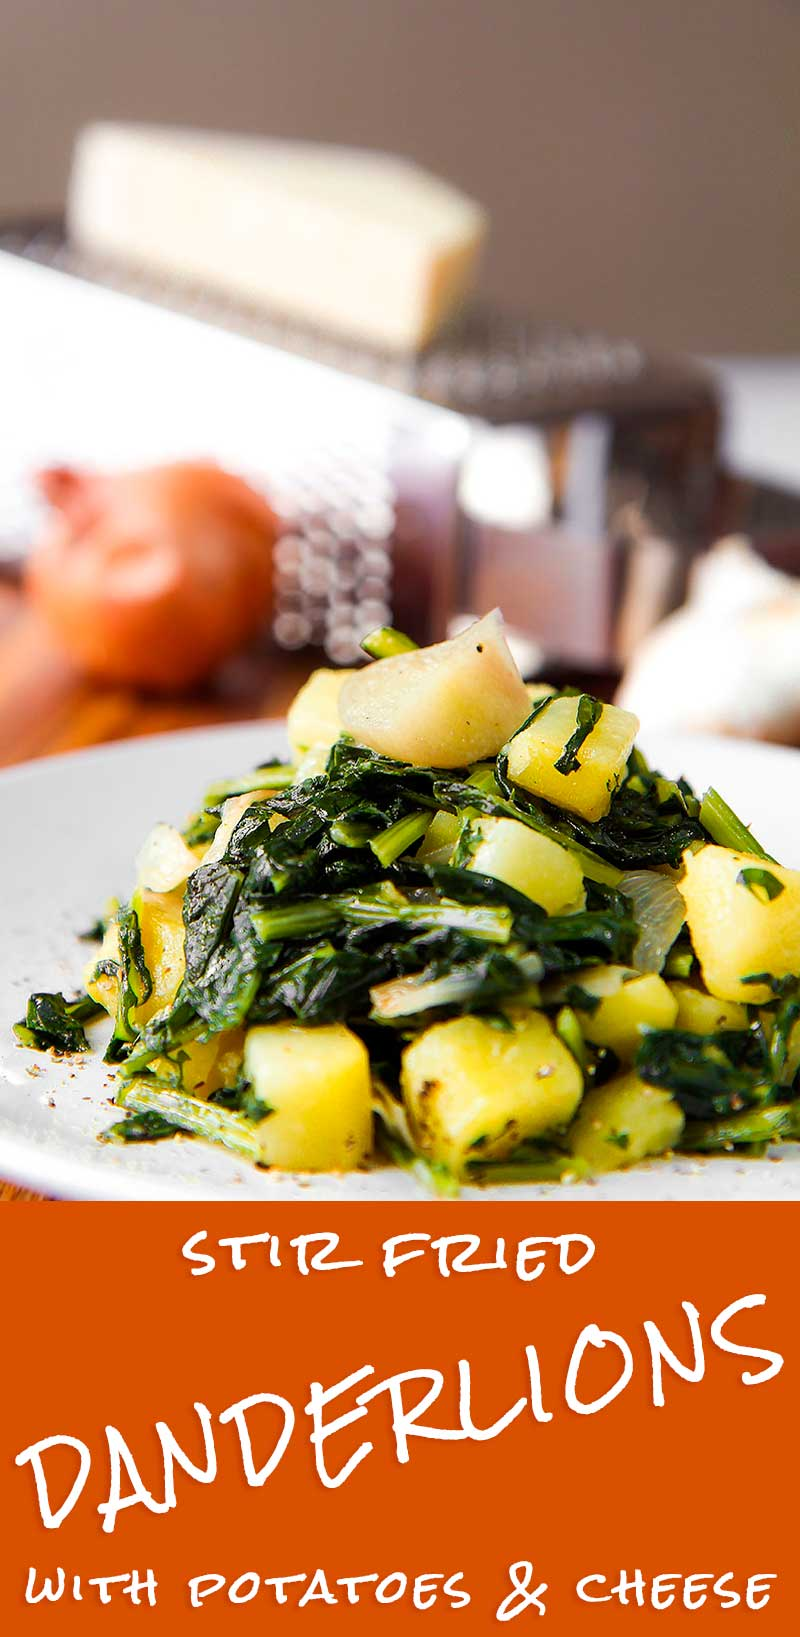 STIR FRIED DANDELIONS AND POTATOES with cheese